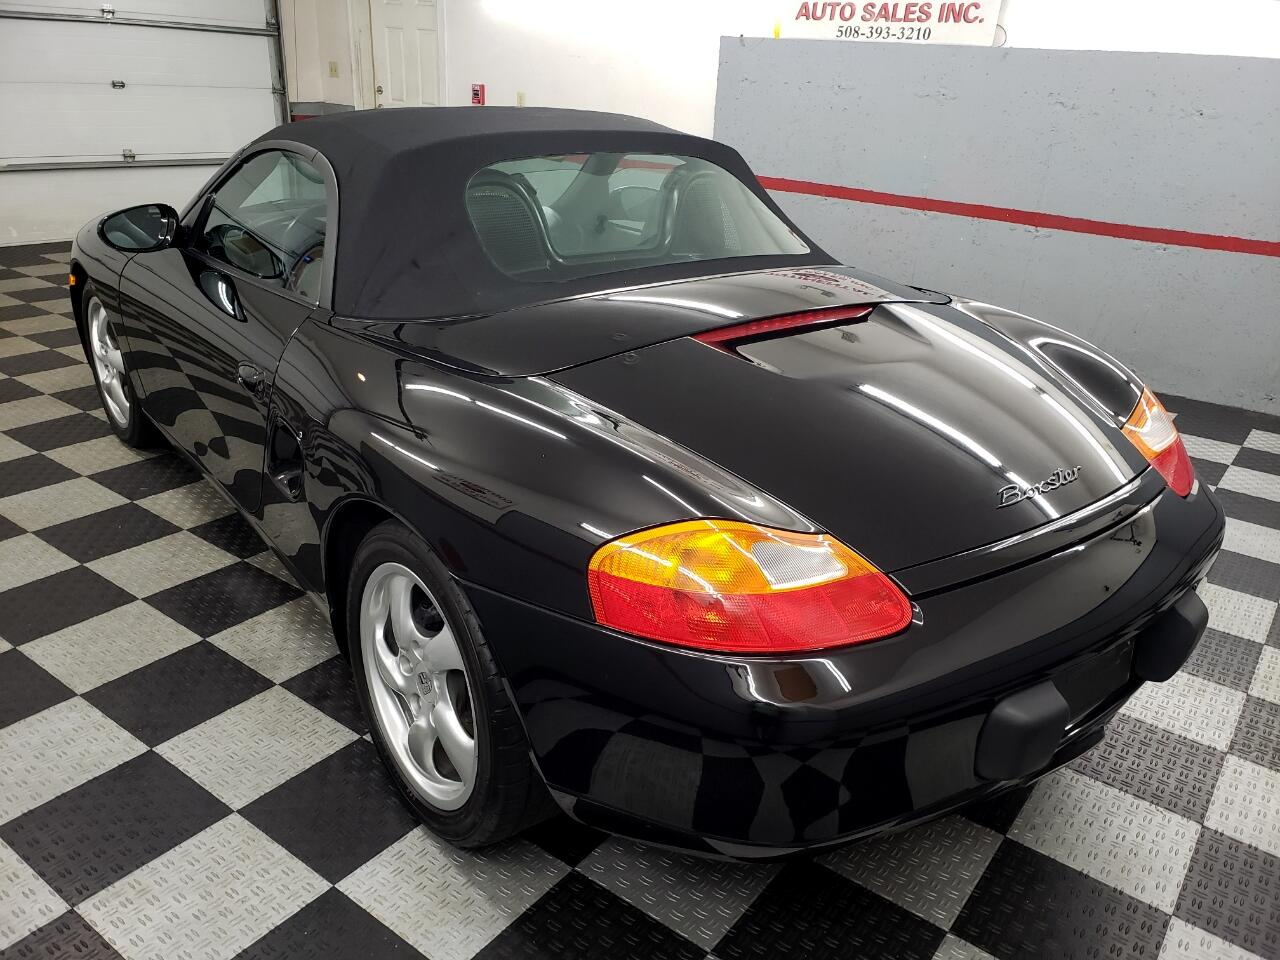 2000 Porsche Boxster 2dr Roadster Manual